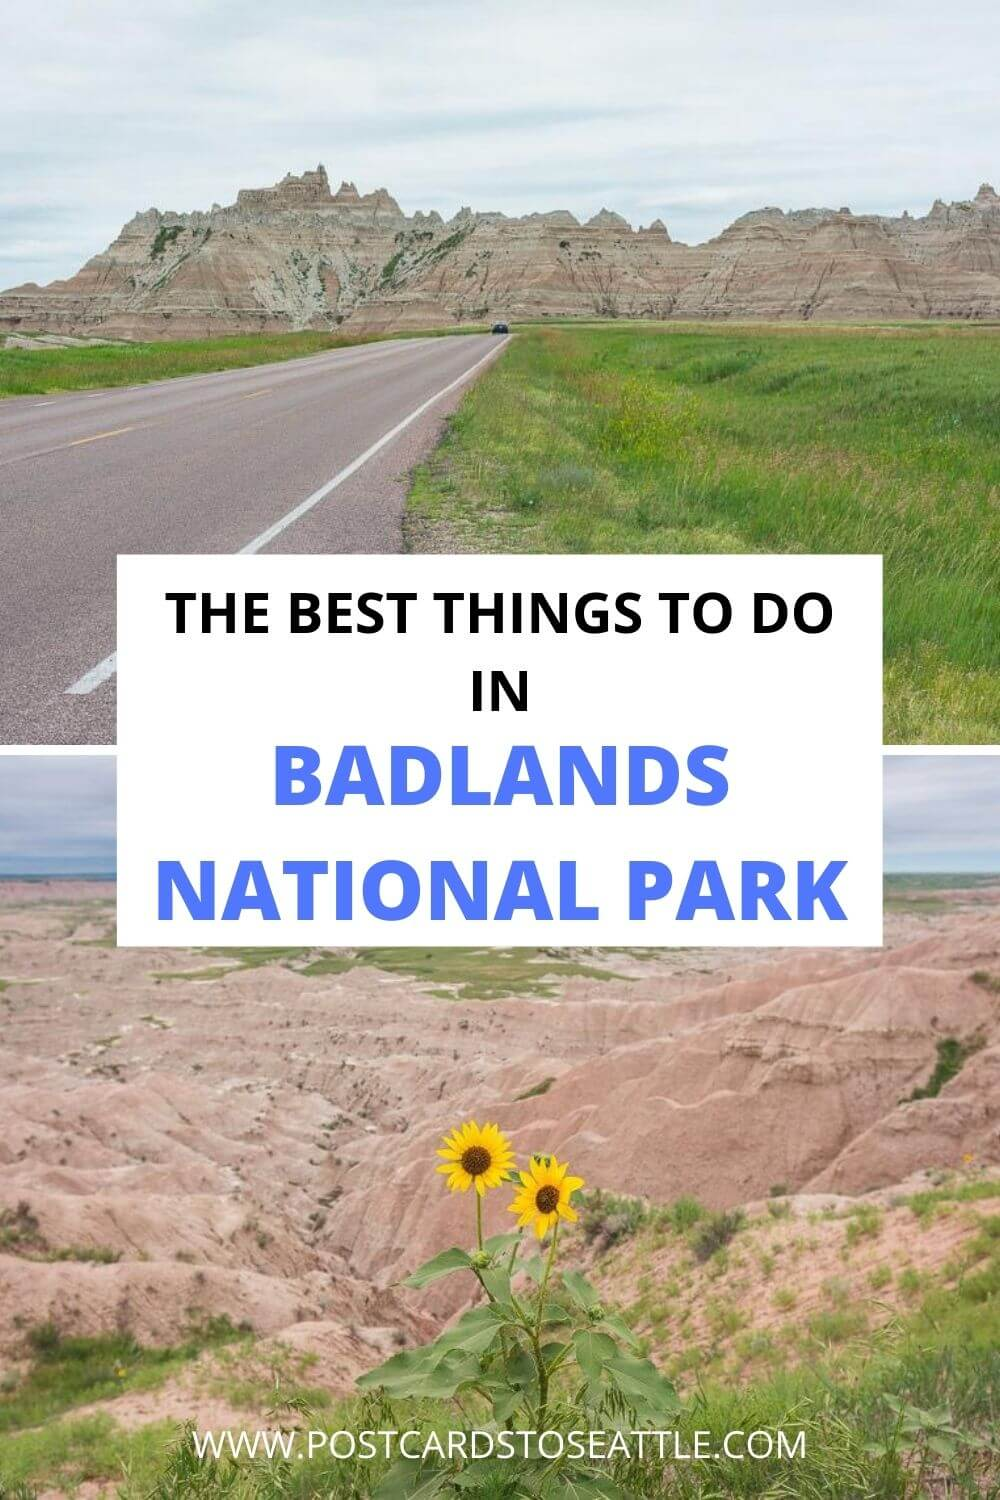 The 12 Best Things to Do in Badlands National Park